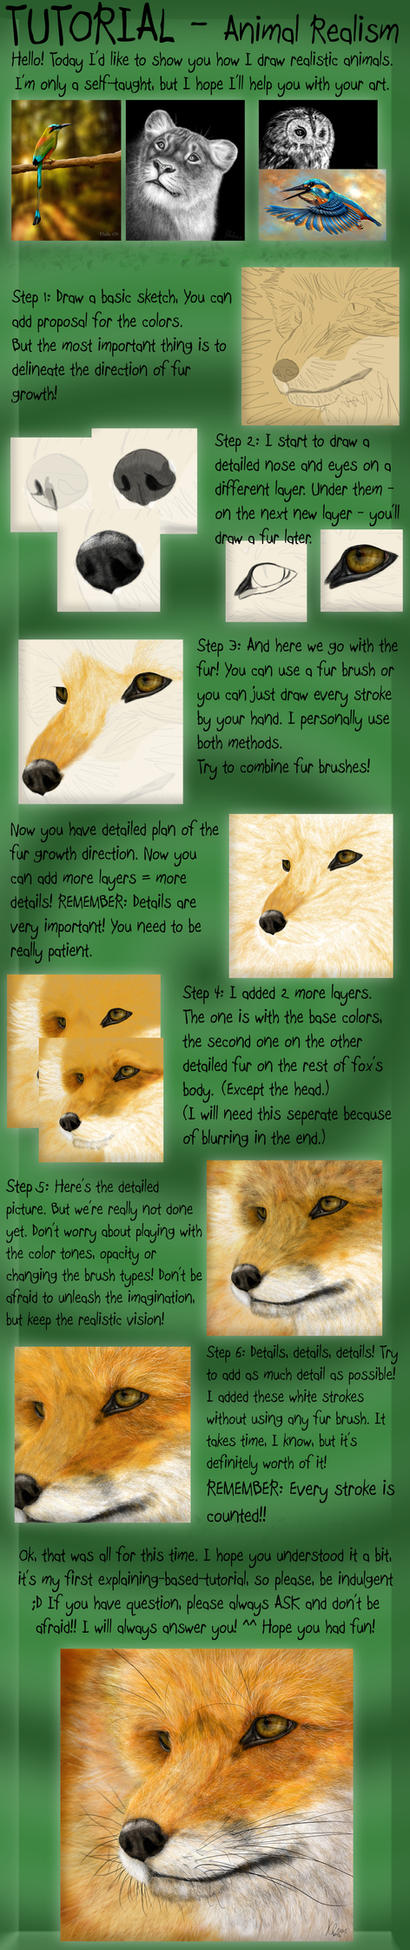 TUTORIAL - Animal Realism by KhaliaArt